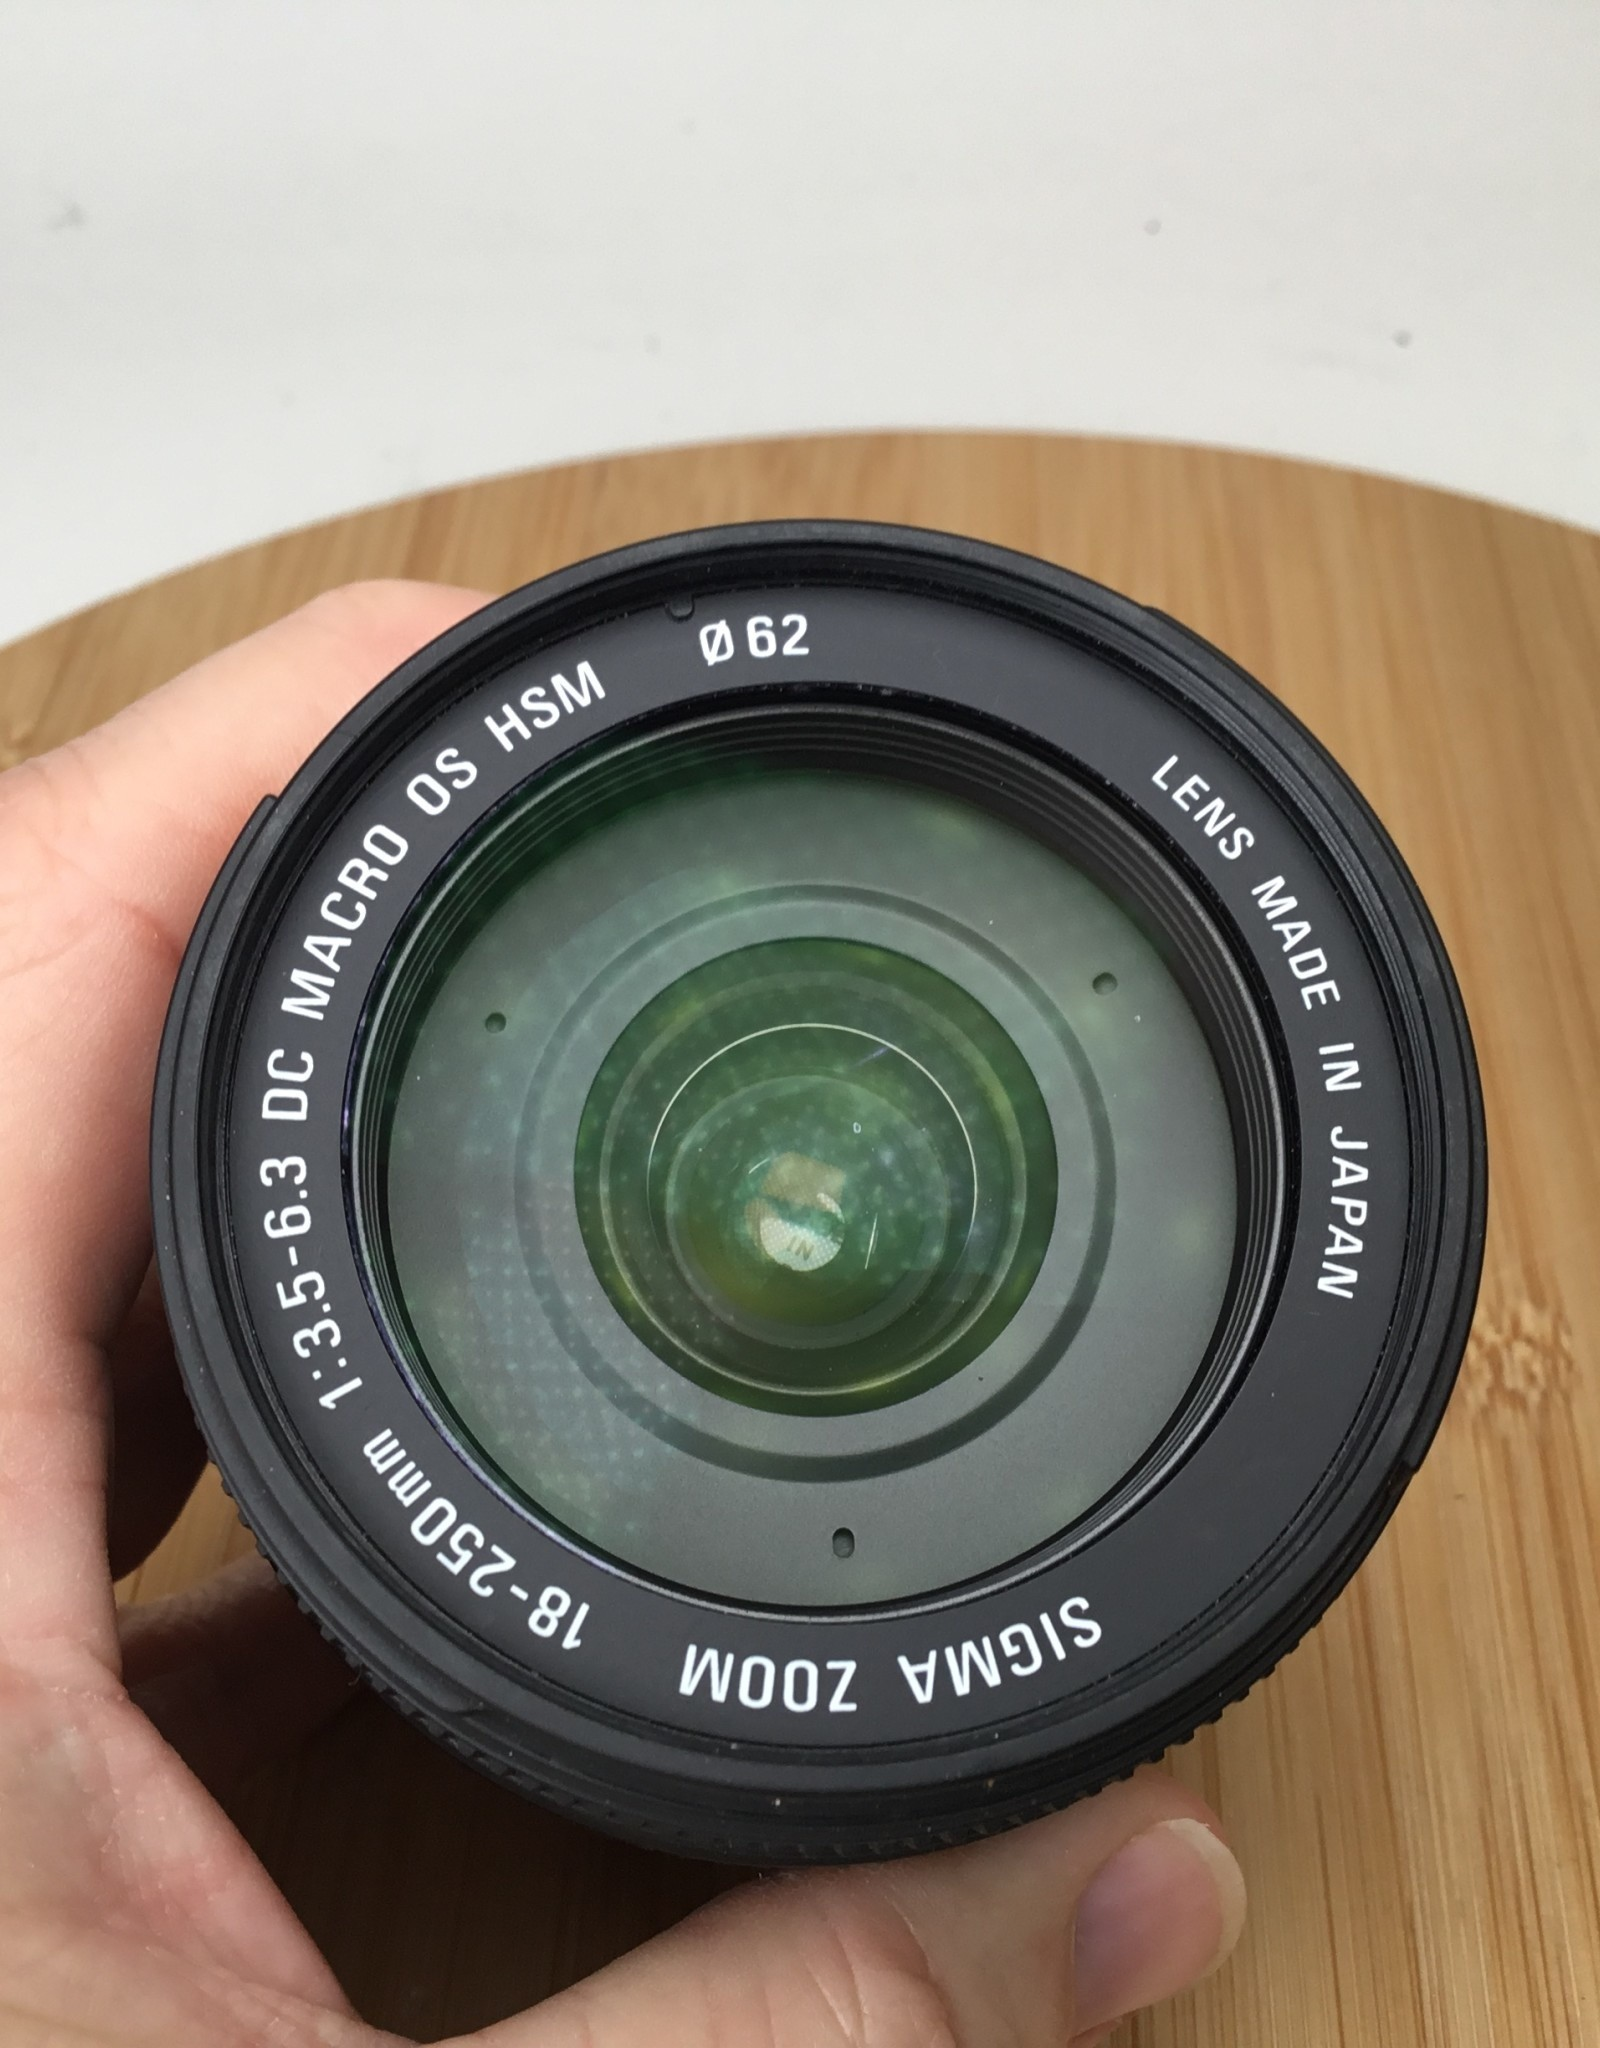 SIGMA Sigma DC 18-250mm f3.5-5.6 Macro HSM OS Lens for Canon Used EX